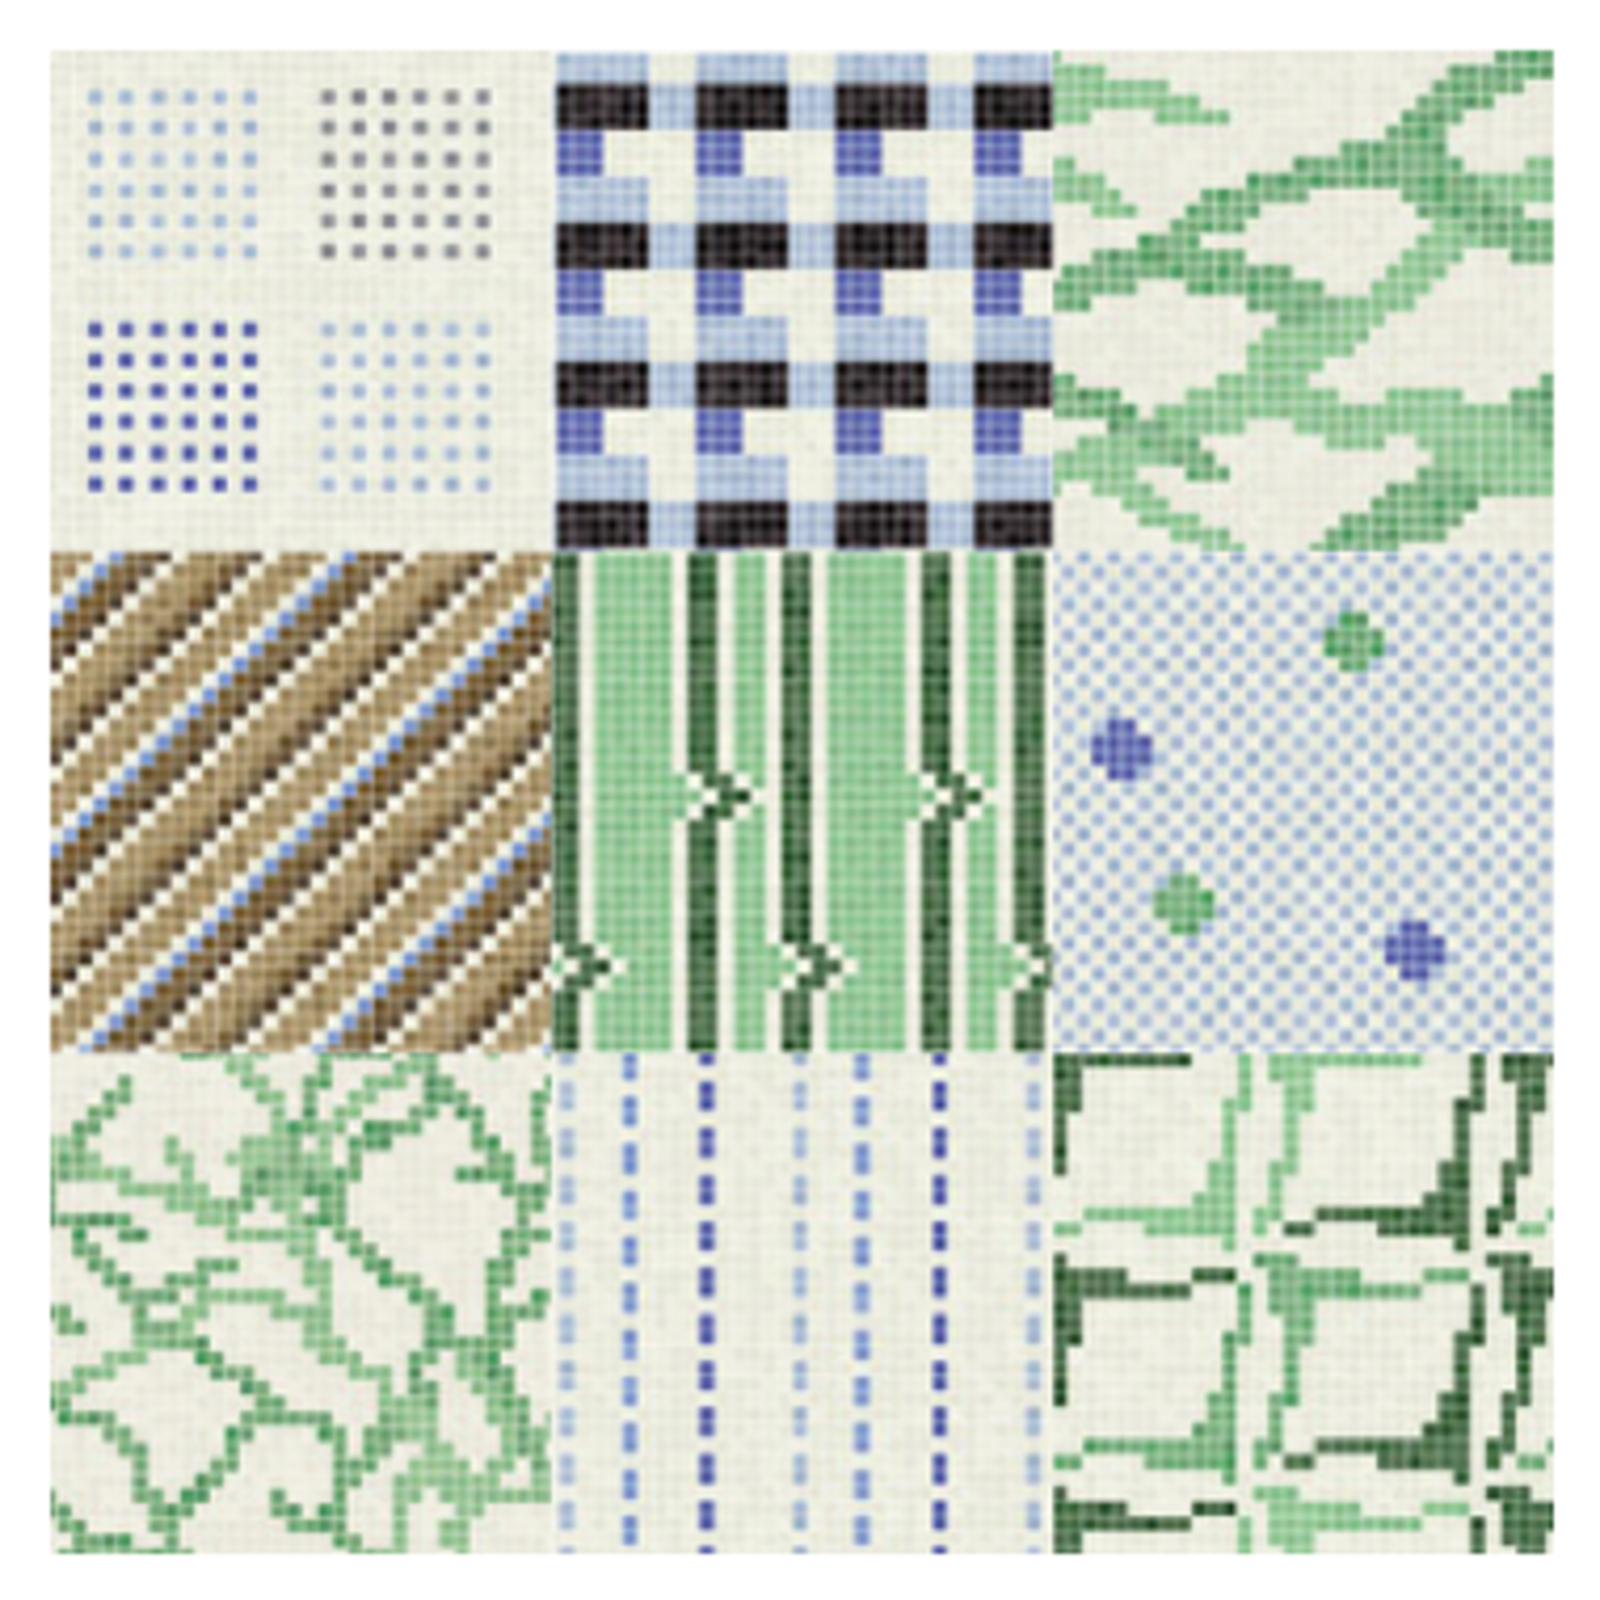 These cool pixelated patterns from Trend USA's FEEL collection, featuring tile mosaics made from post-consumer recycled materials. In addition to the six shown here, there are 22 more motifs that will work on walls and floors throughout your home.  Eco-Friendly Tile Designs for Spring by Jacqueline Leahy